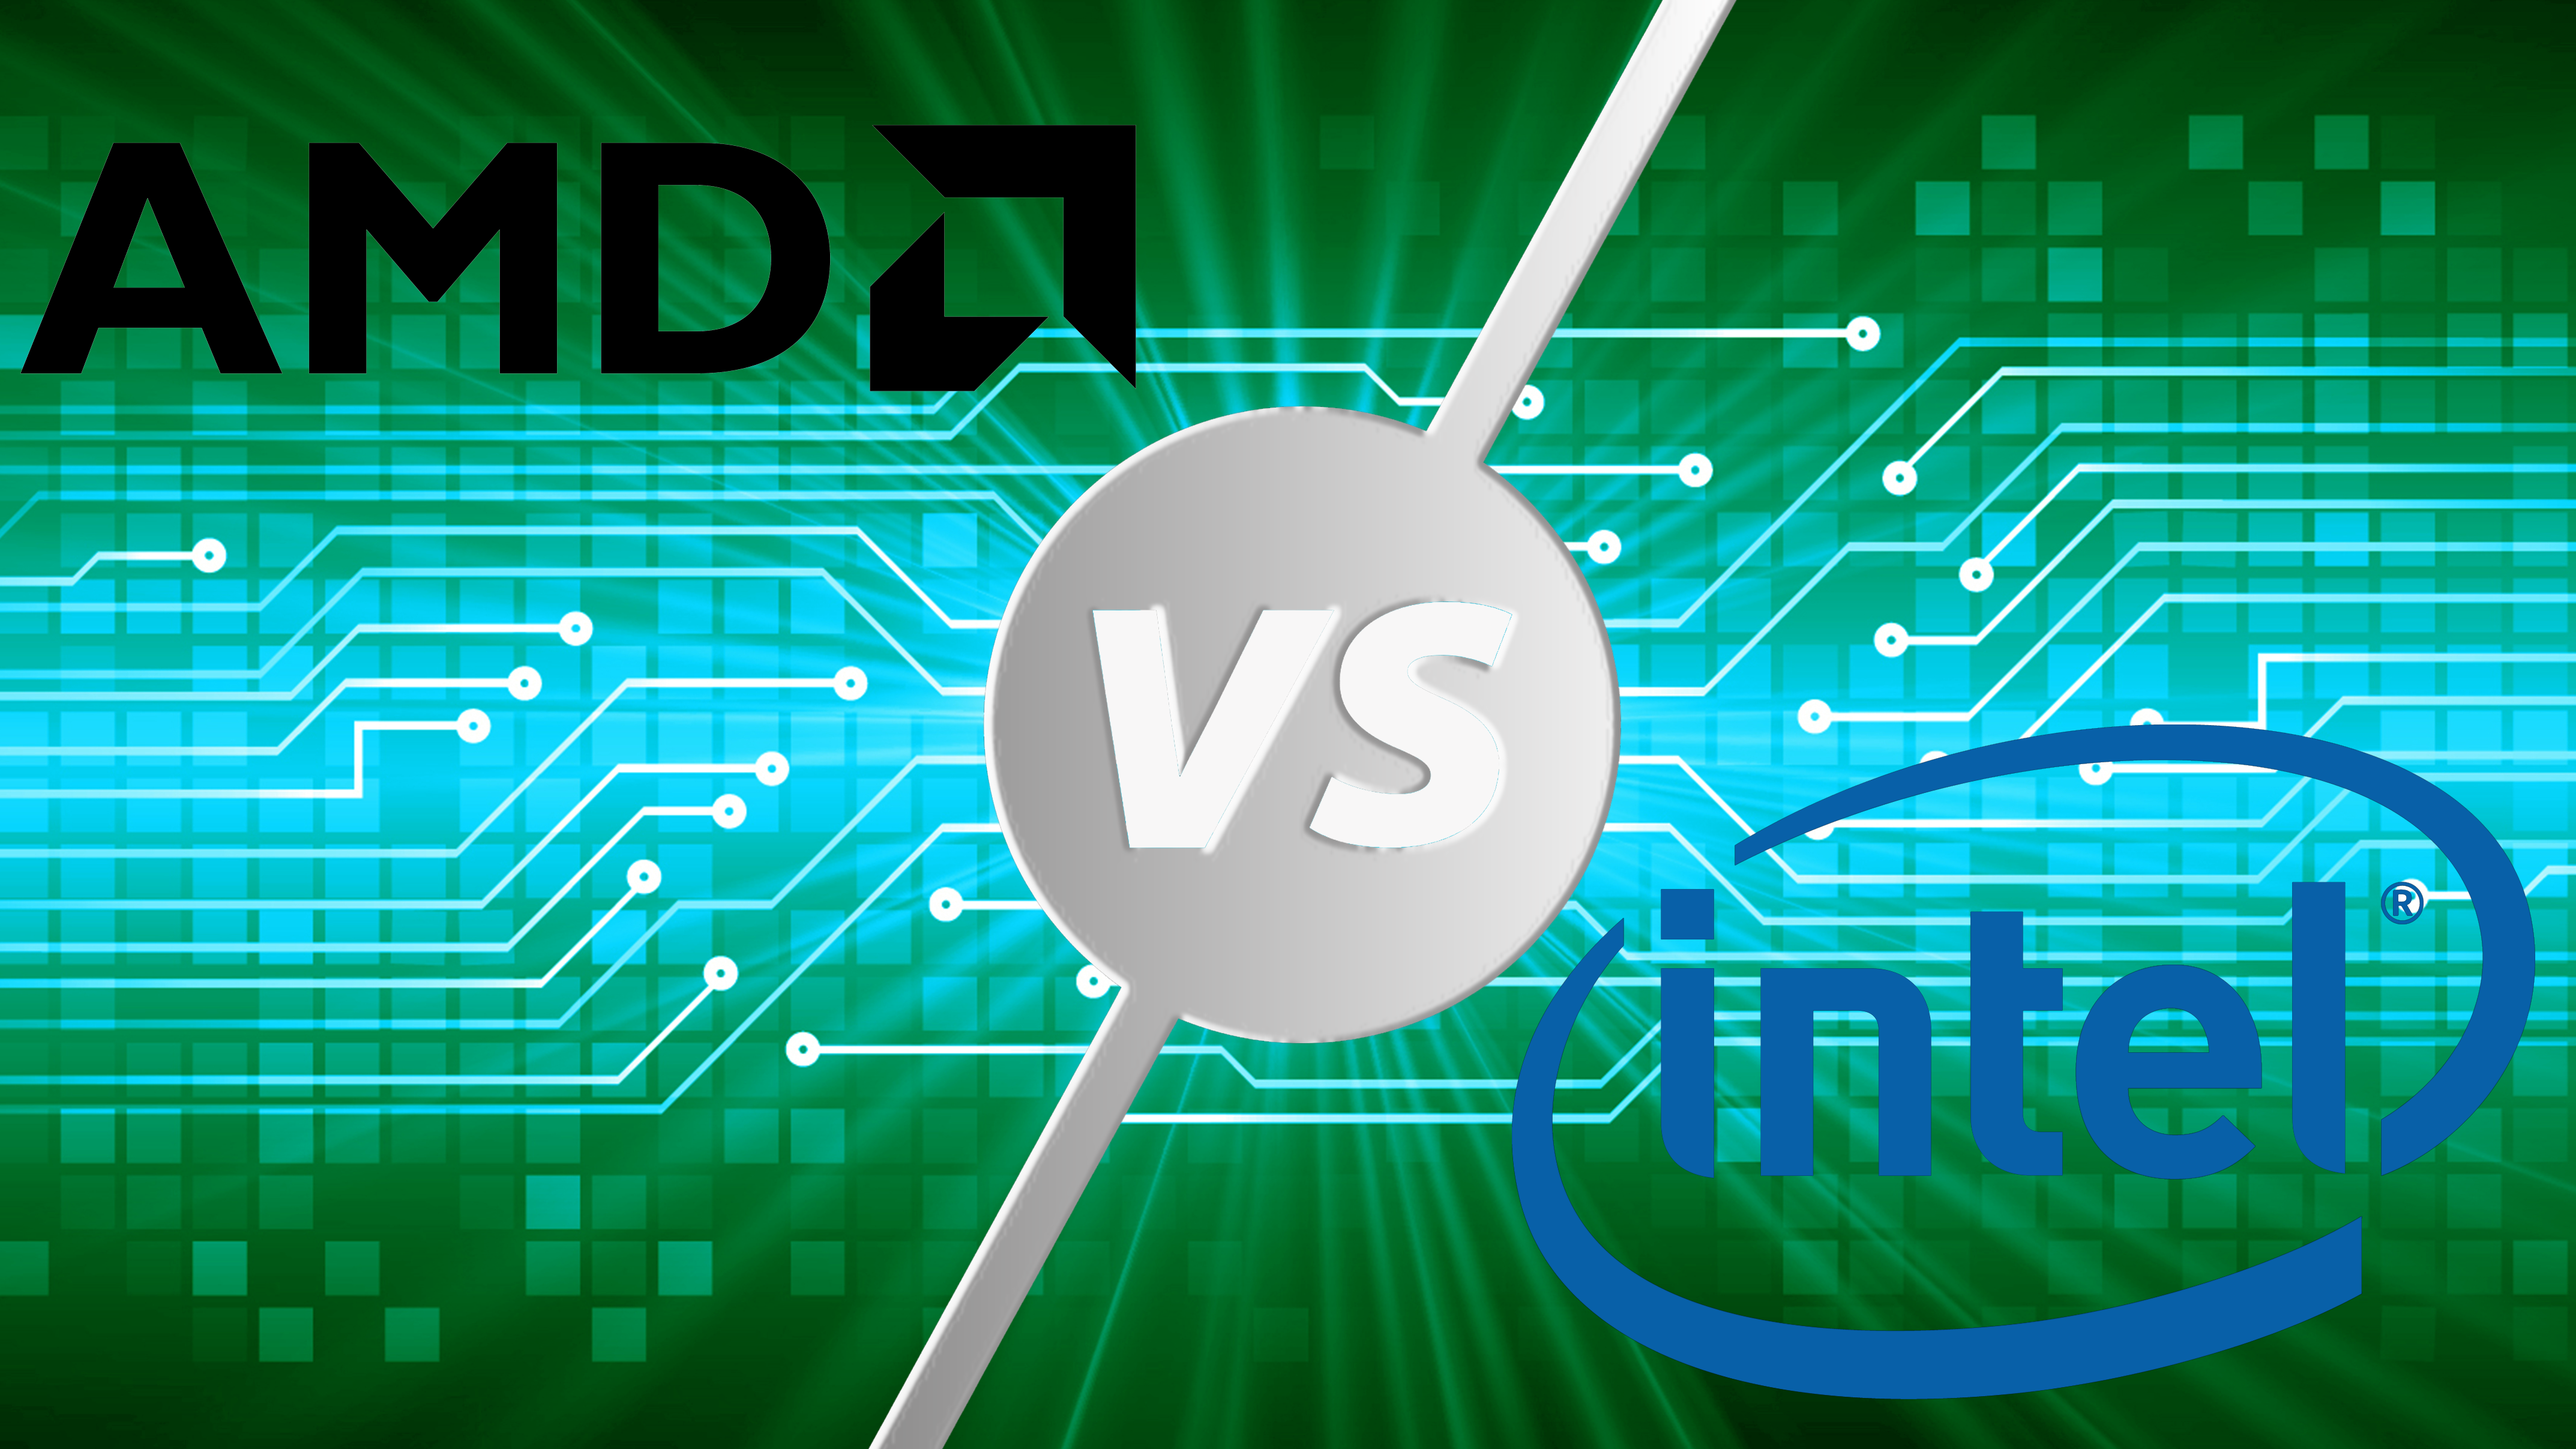 Intel vs AMD Processor Security: Who Makes the Safest CPUs